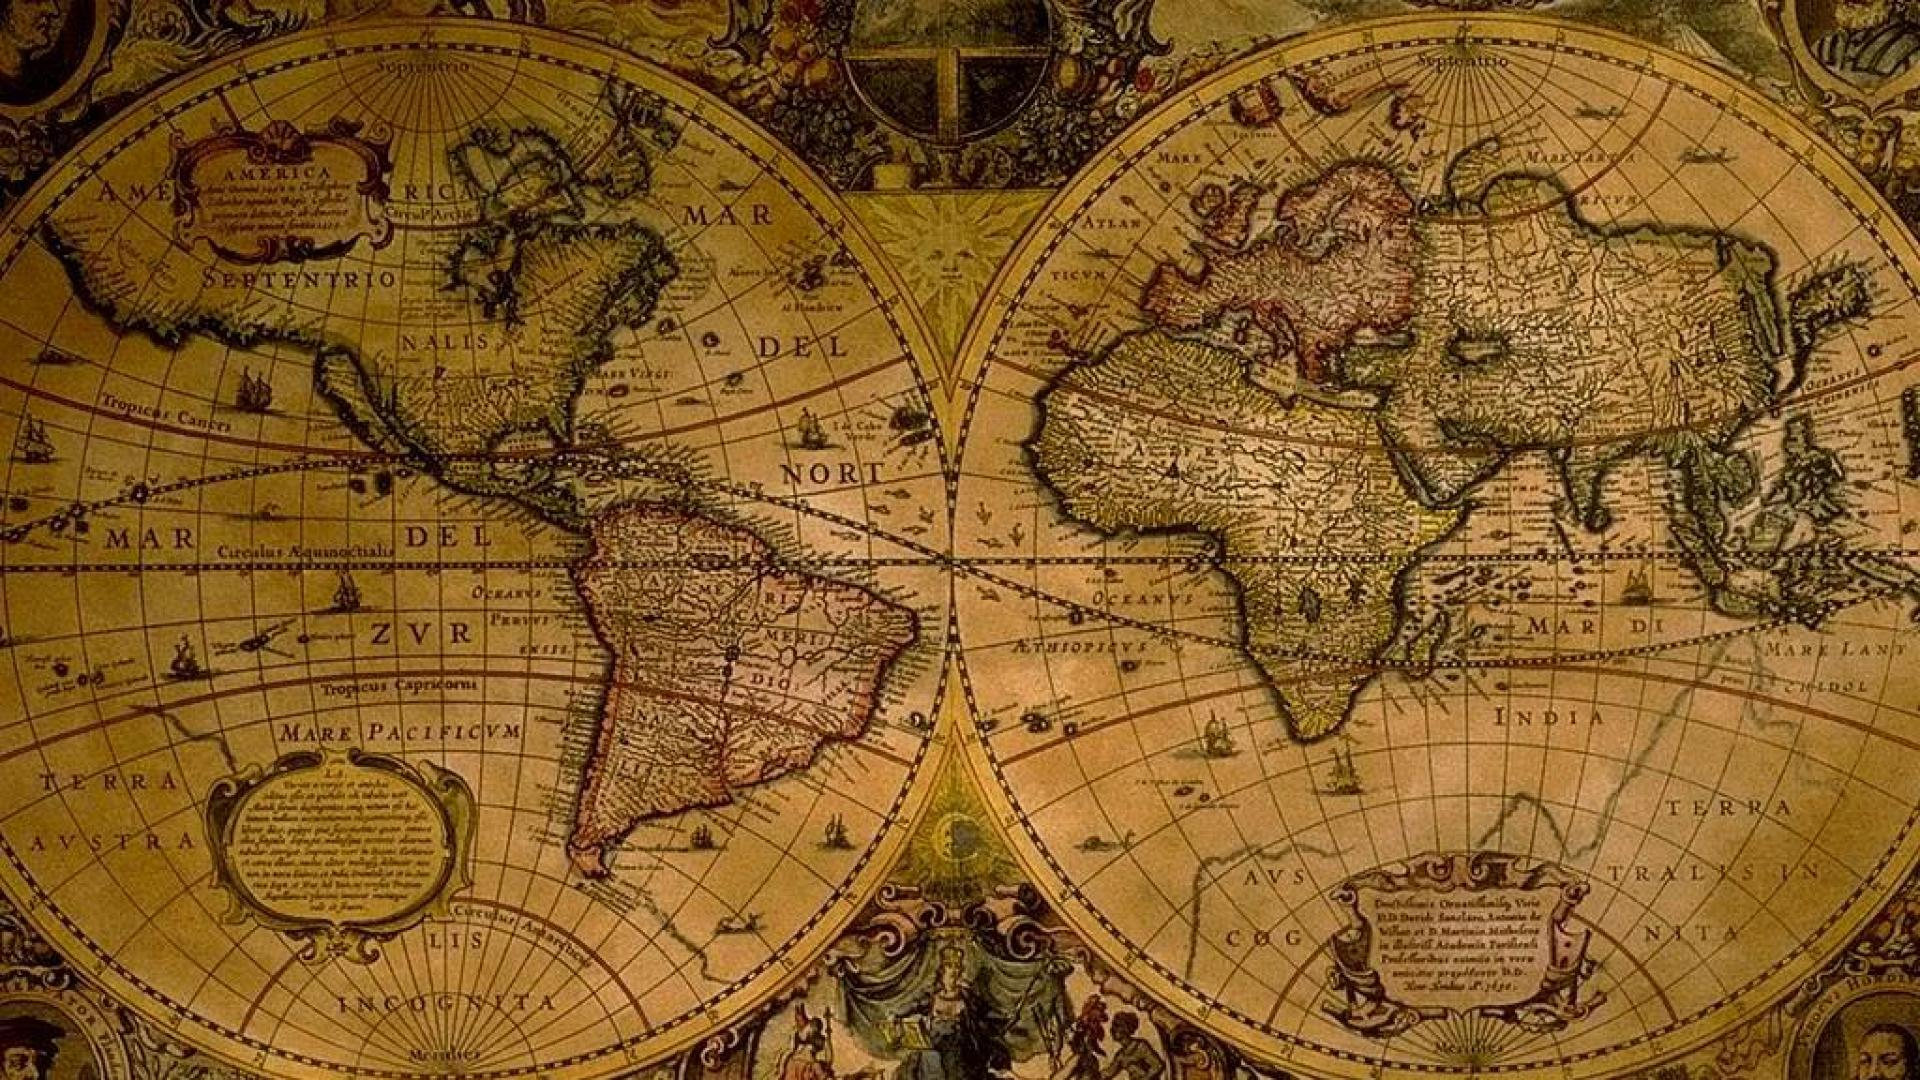 2123002255 4653 Kbytes download to your desktop Old world map 1920x1080